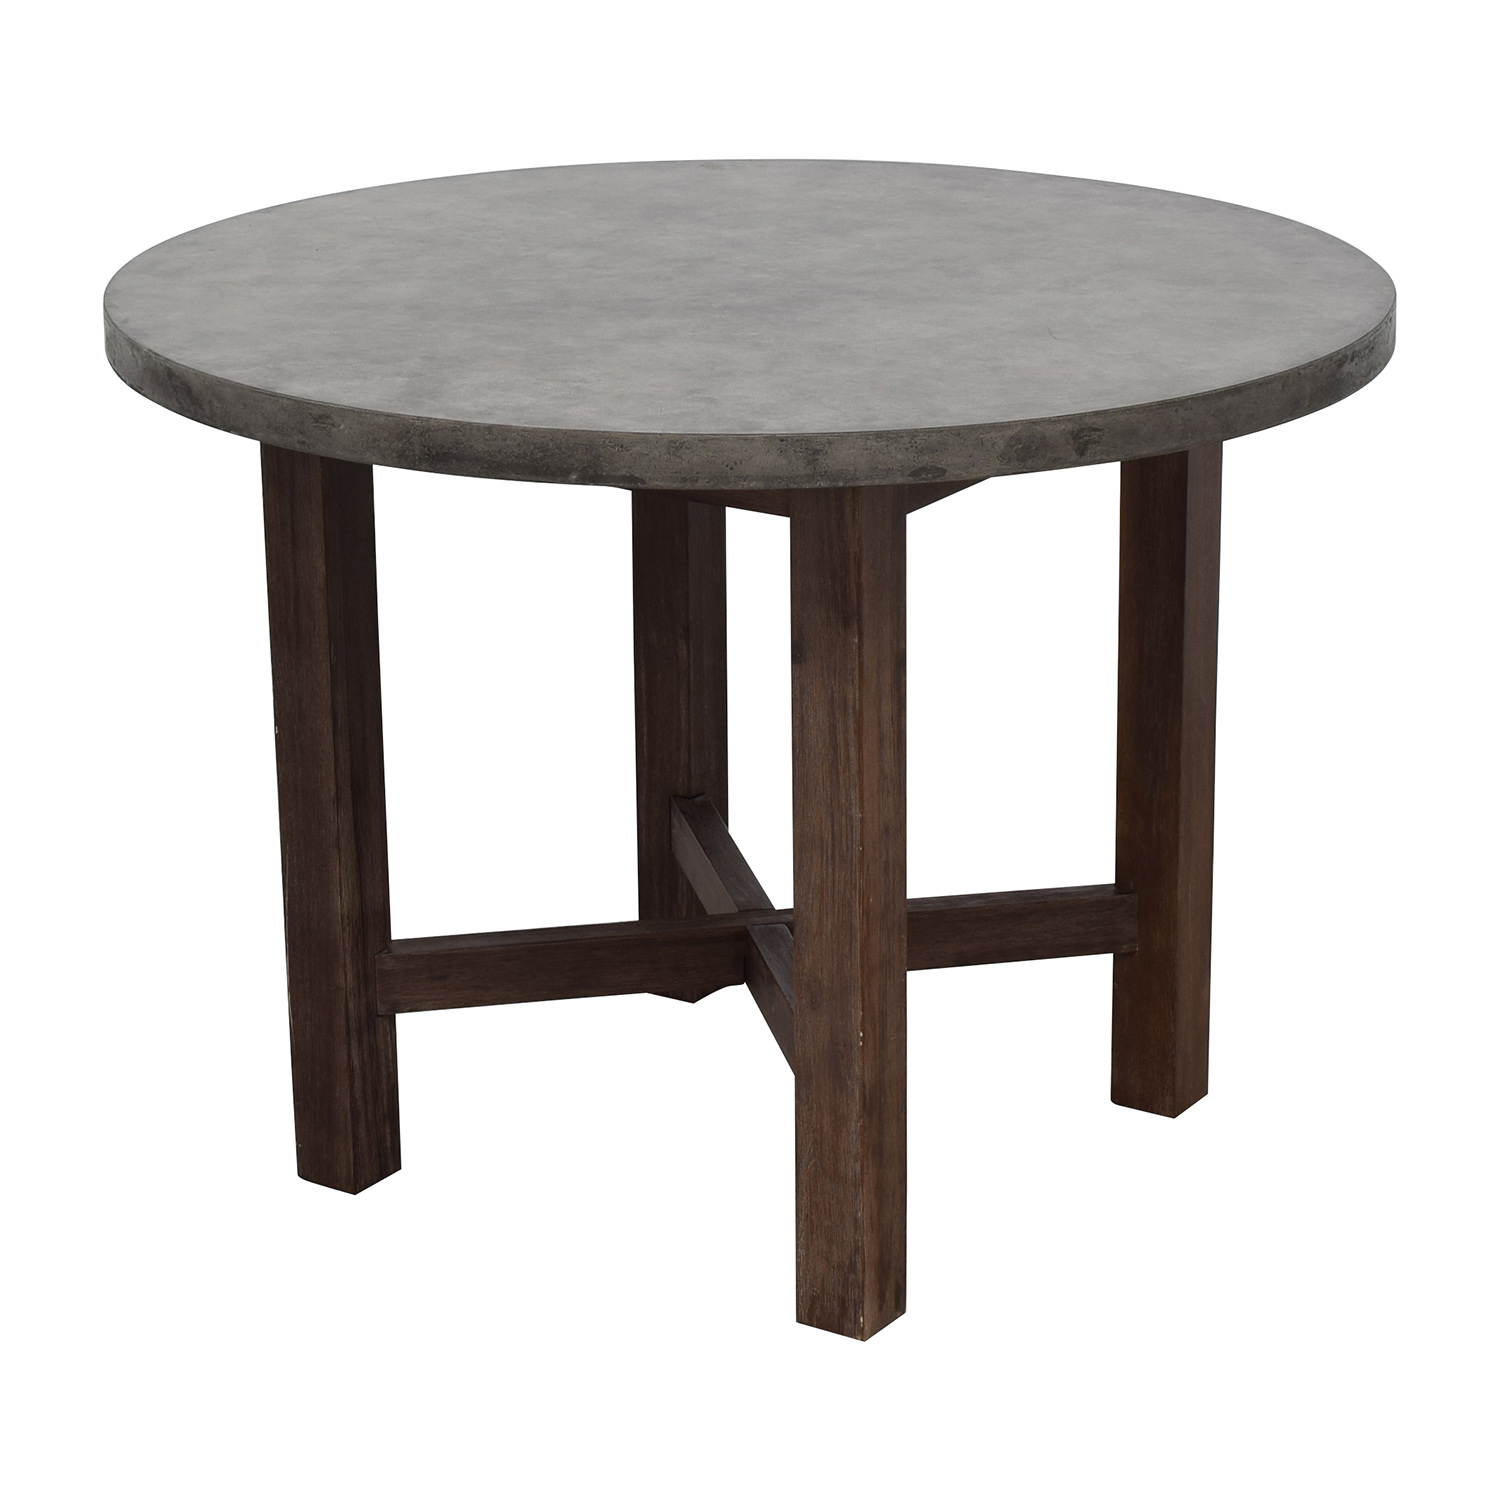 50 off round grey stone dining table tables for Round stone top dining table